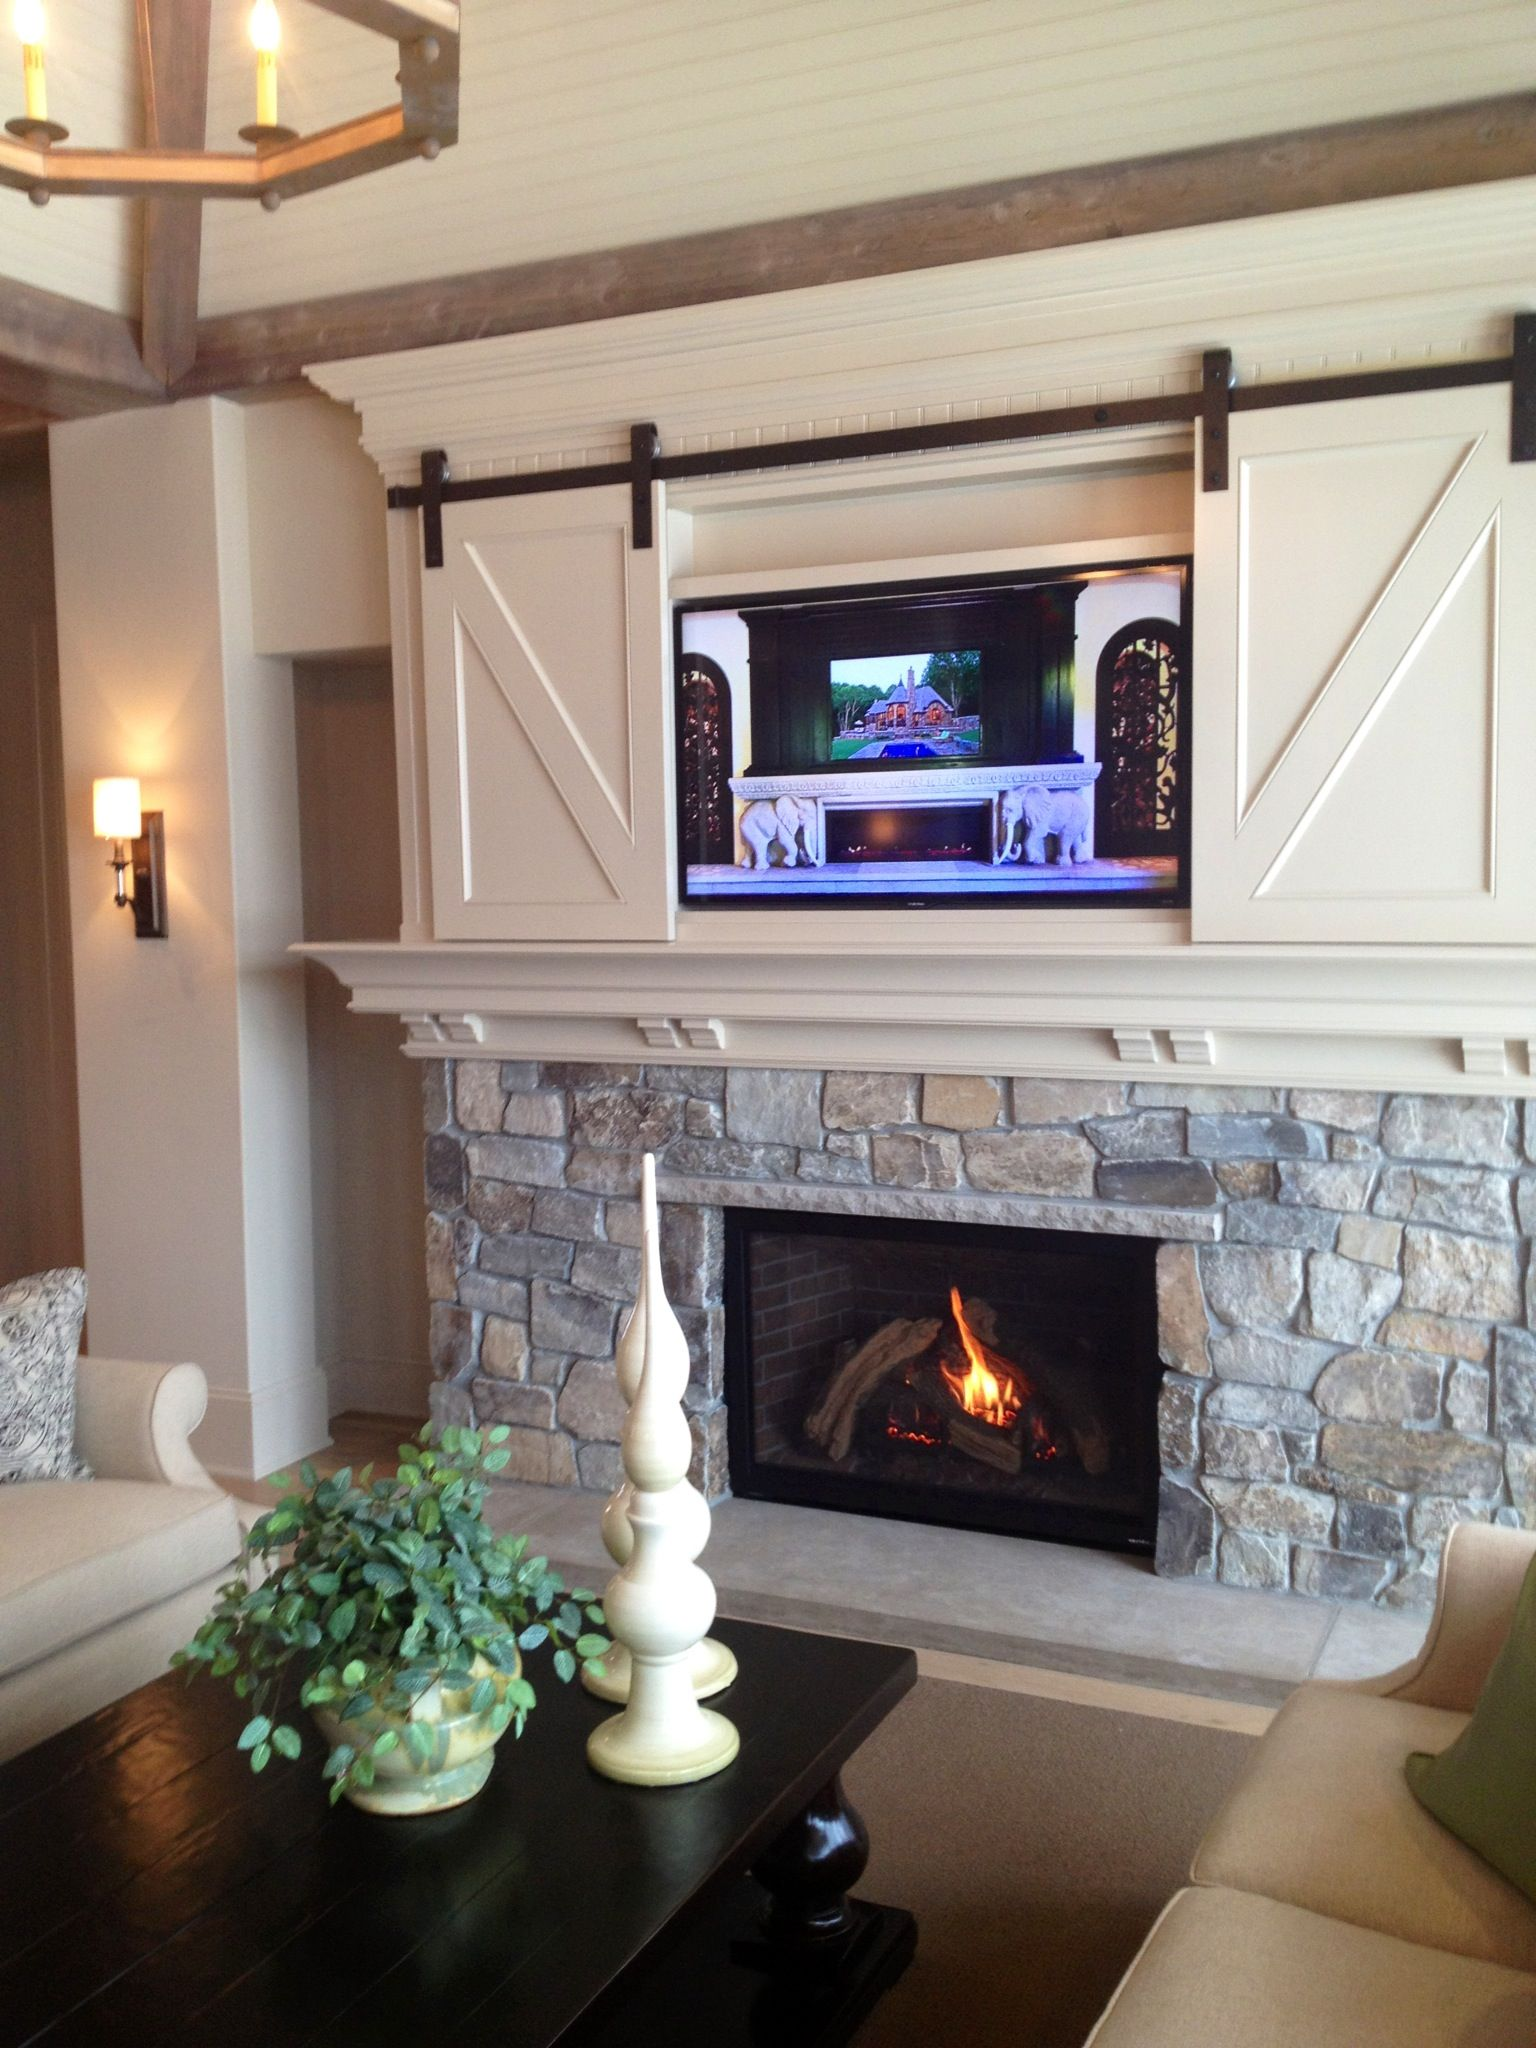 Brillanti Idee Per La Tv Nel Salotto Home House Design Fireplace Makeover